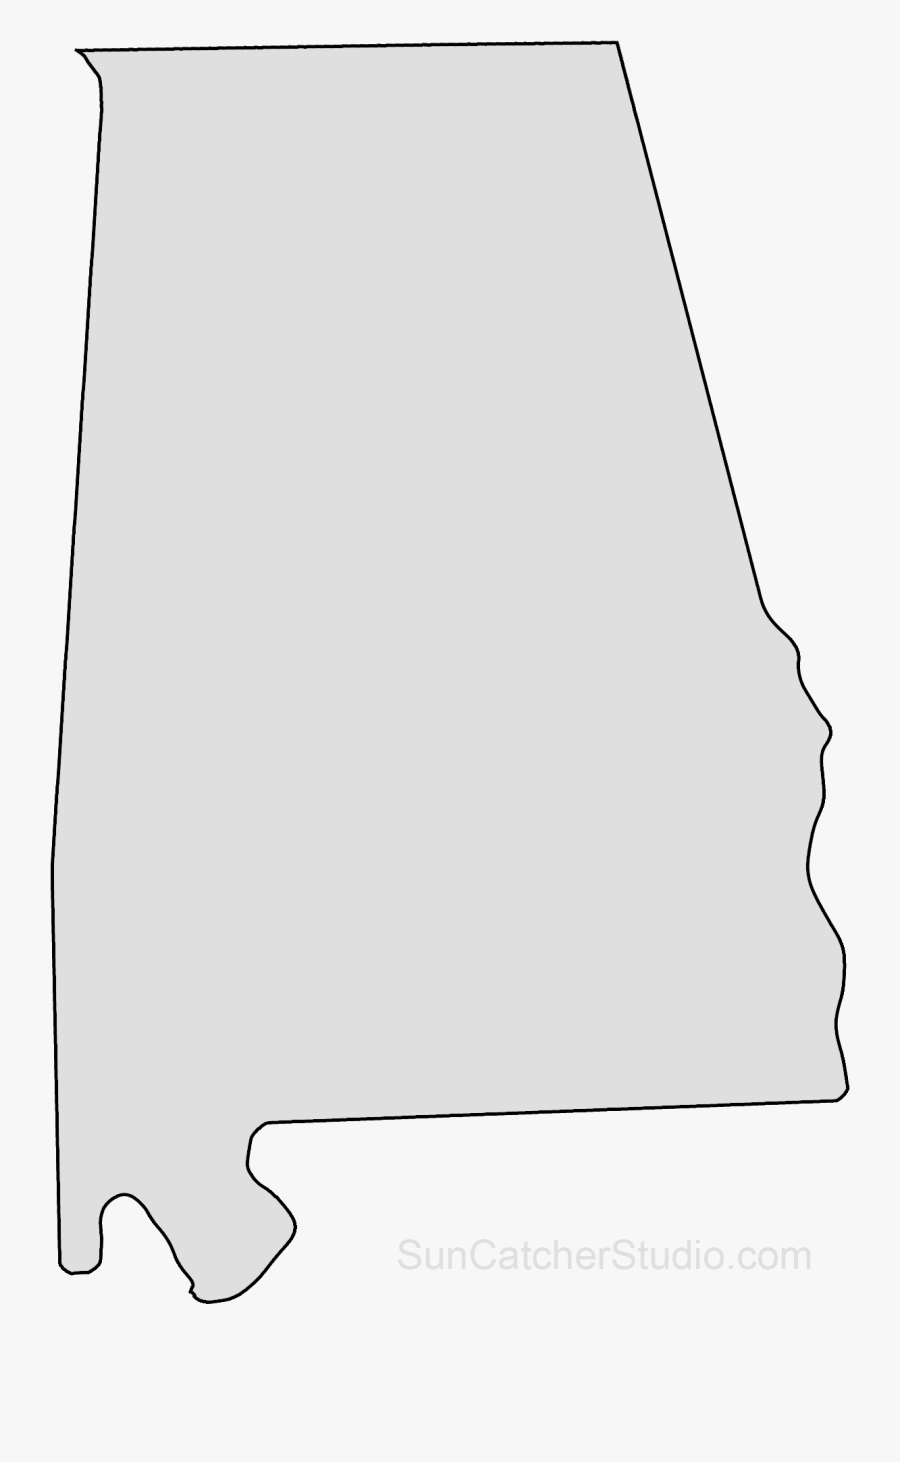 Clip Art Map Printable Shape Stencil - Shape Of State Of Alabama, Transparent Clipart